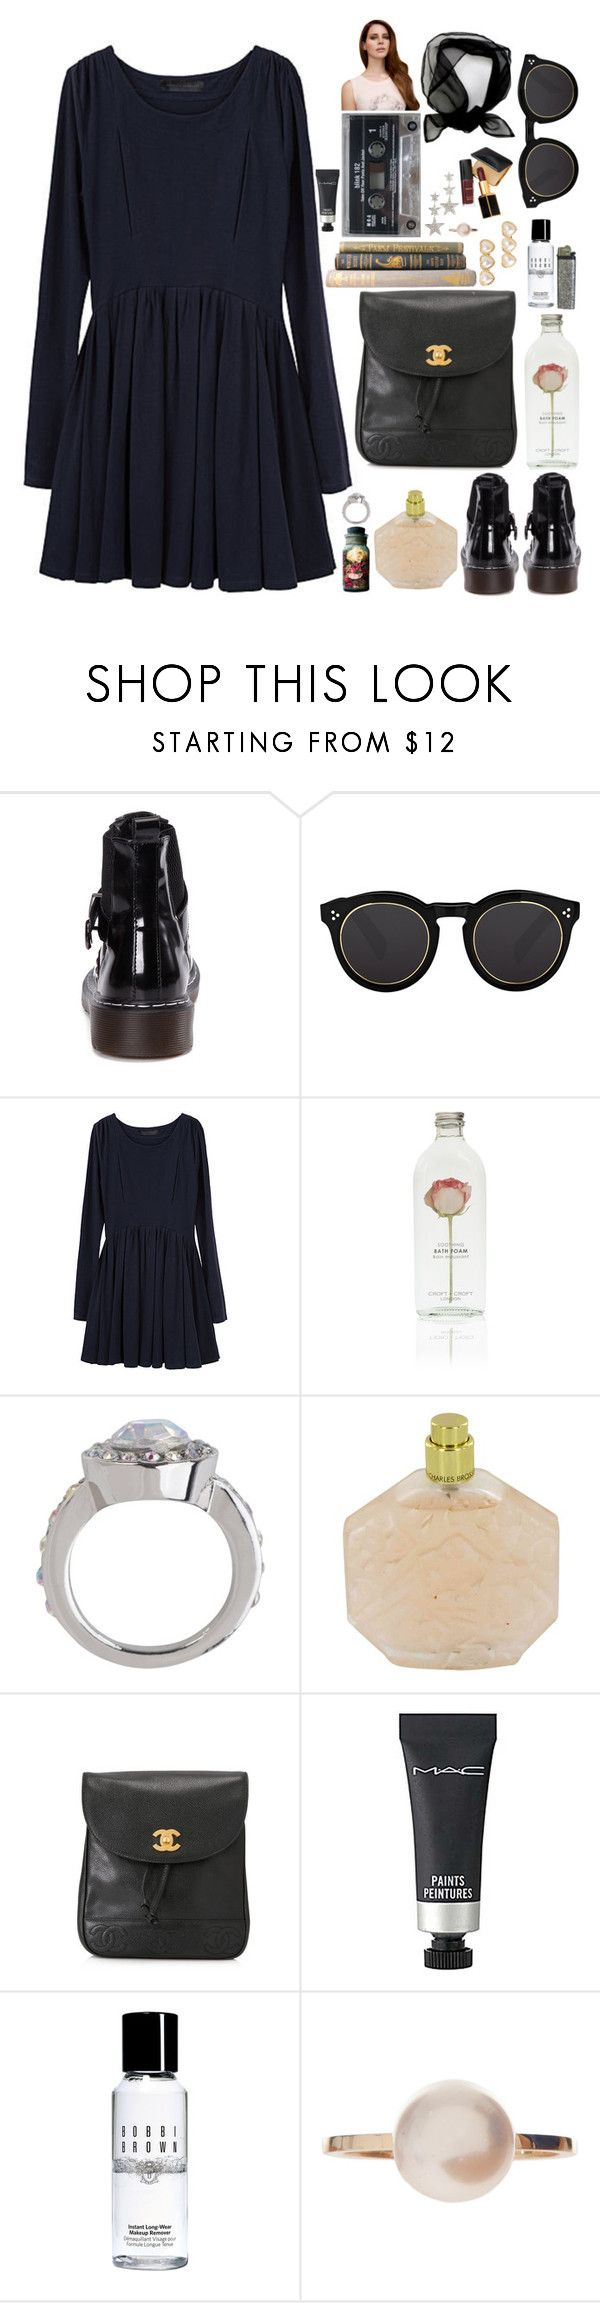 """save"" by gb041112 ❤ liked on Polyvore featuring Illesteva, Proenza Schouler, Chanel, MAC Cosmetics, Bobbi Brown Cosmetics, Sophie Bille Brahe and Tom Ford"